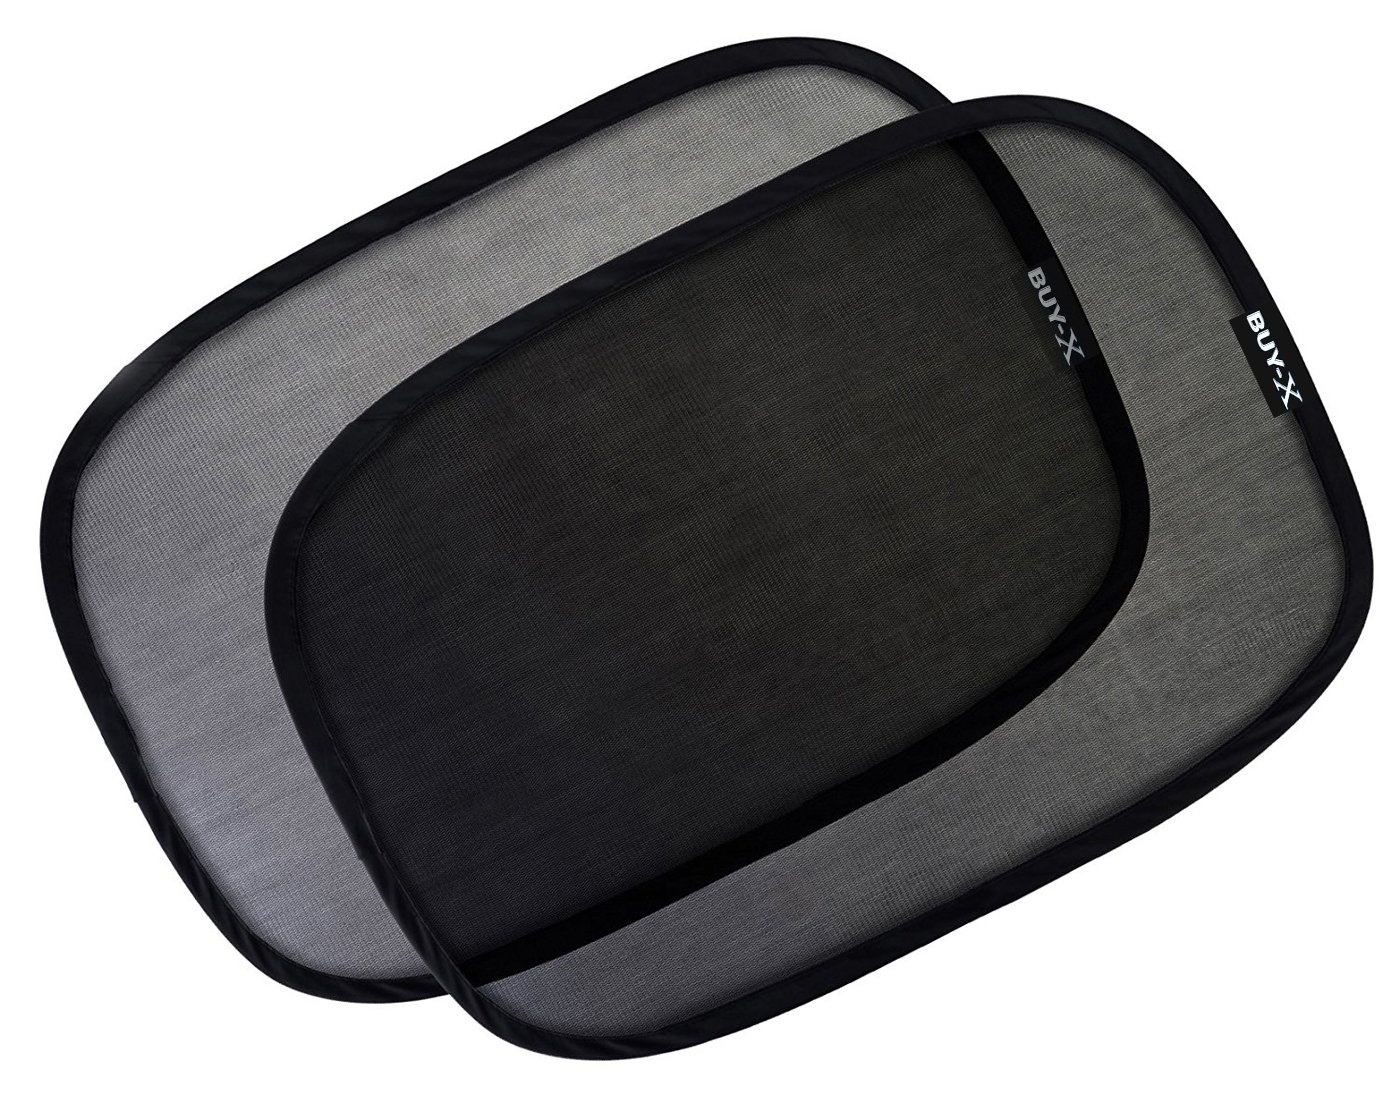 Car Sun Shades (3-Pack) - Blocks 97% of Harmful UV Rays - Universal Auto Back Seat Window Sunshade - Sun Glare Protector for Your Kids & Pets - 21'x14' inch - for SUVs, Minivans, and Trucks Buy-X BX-102